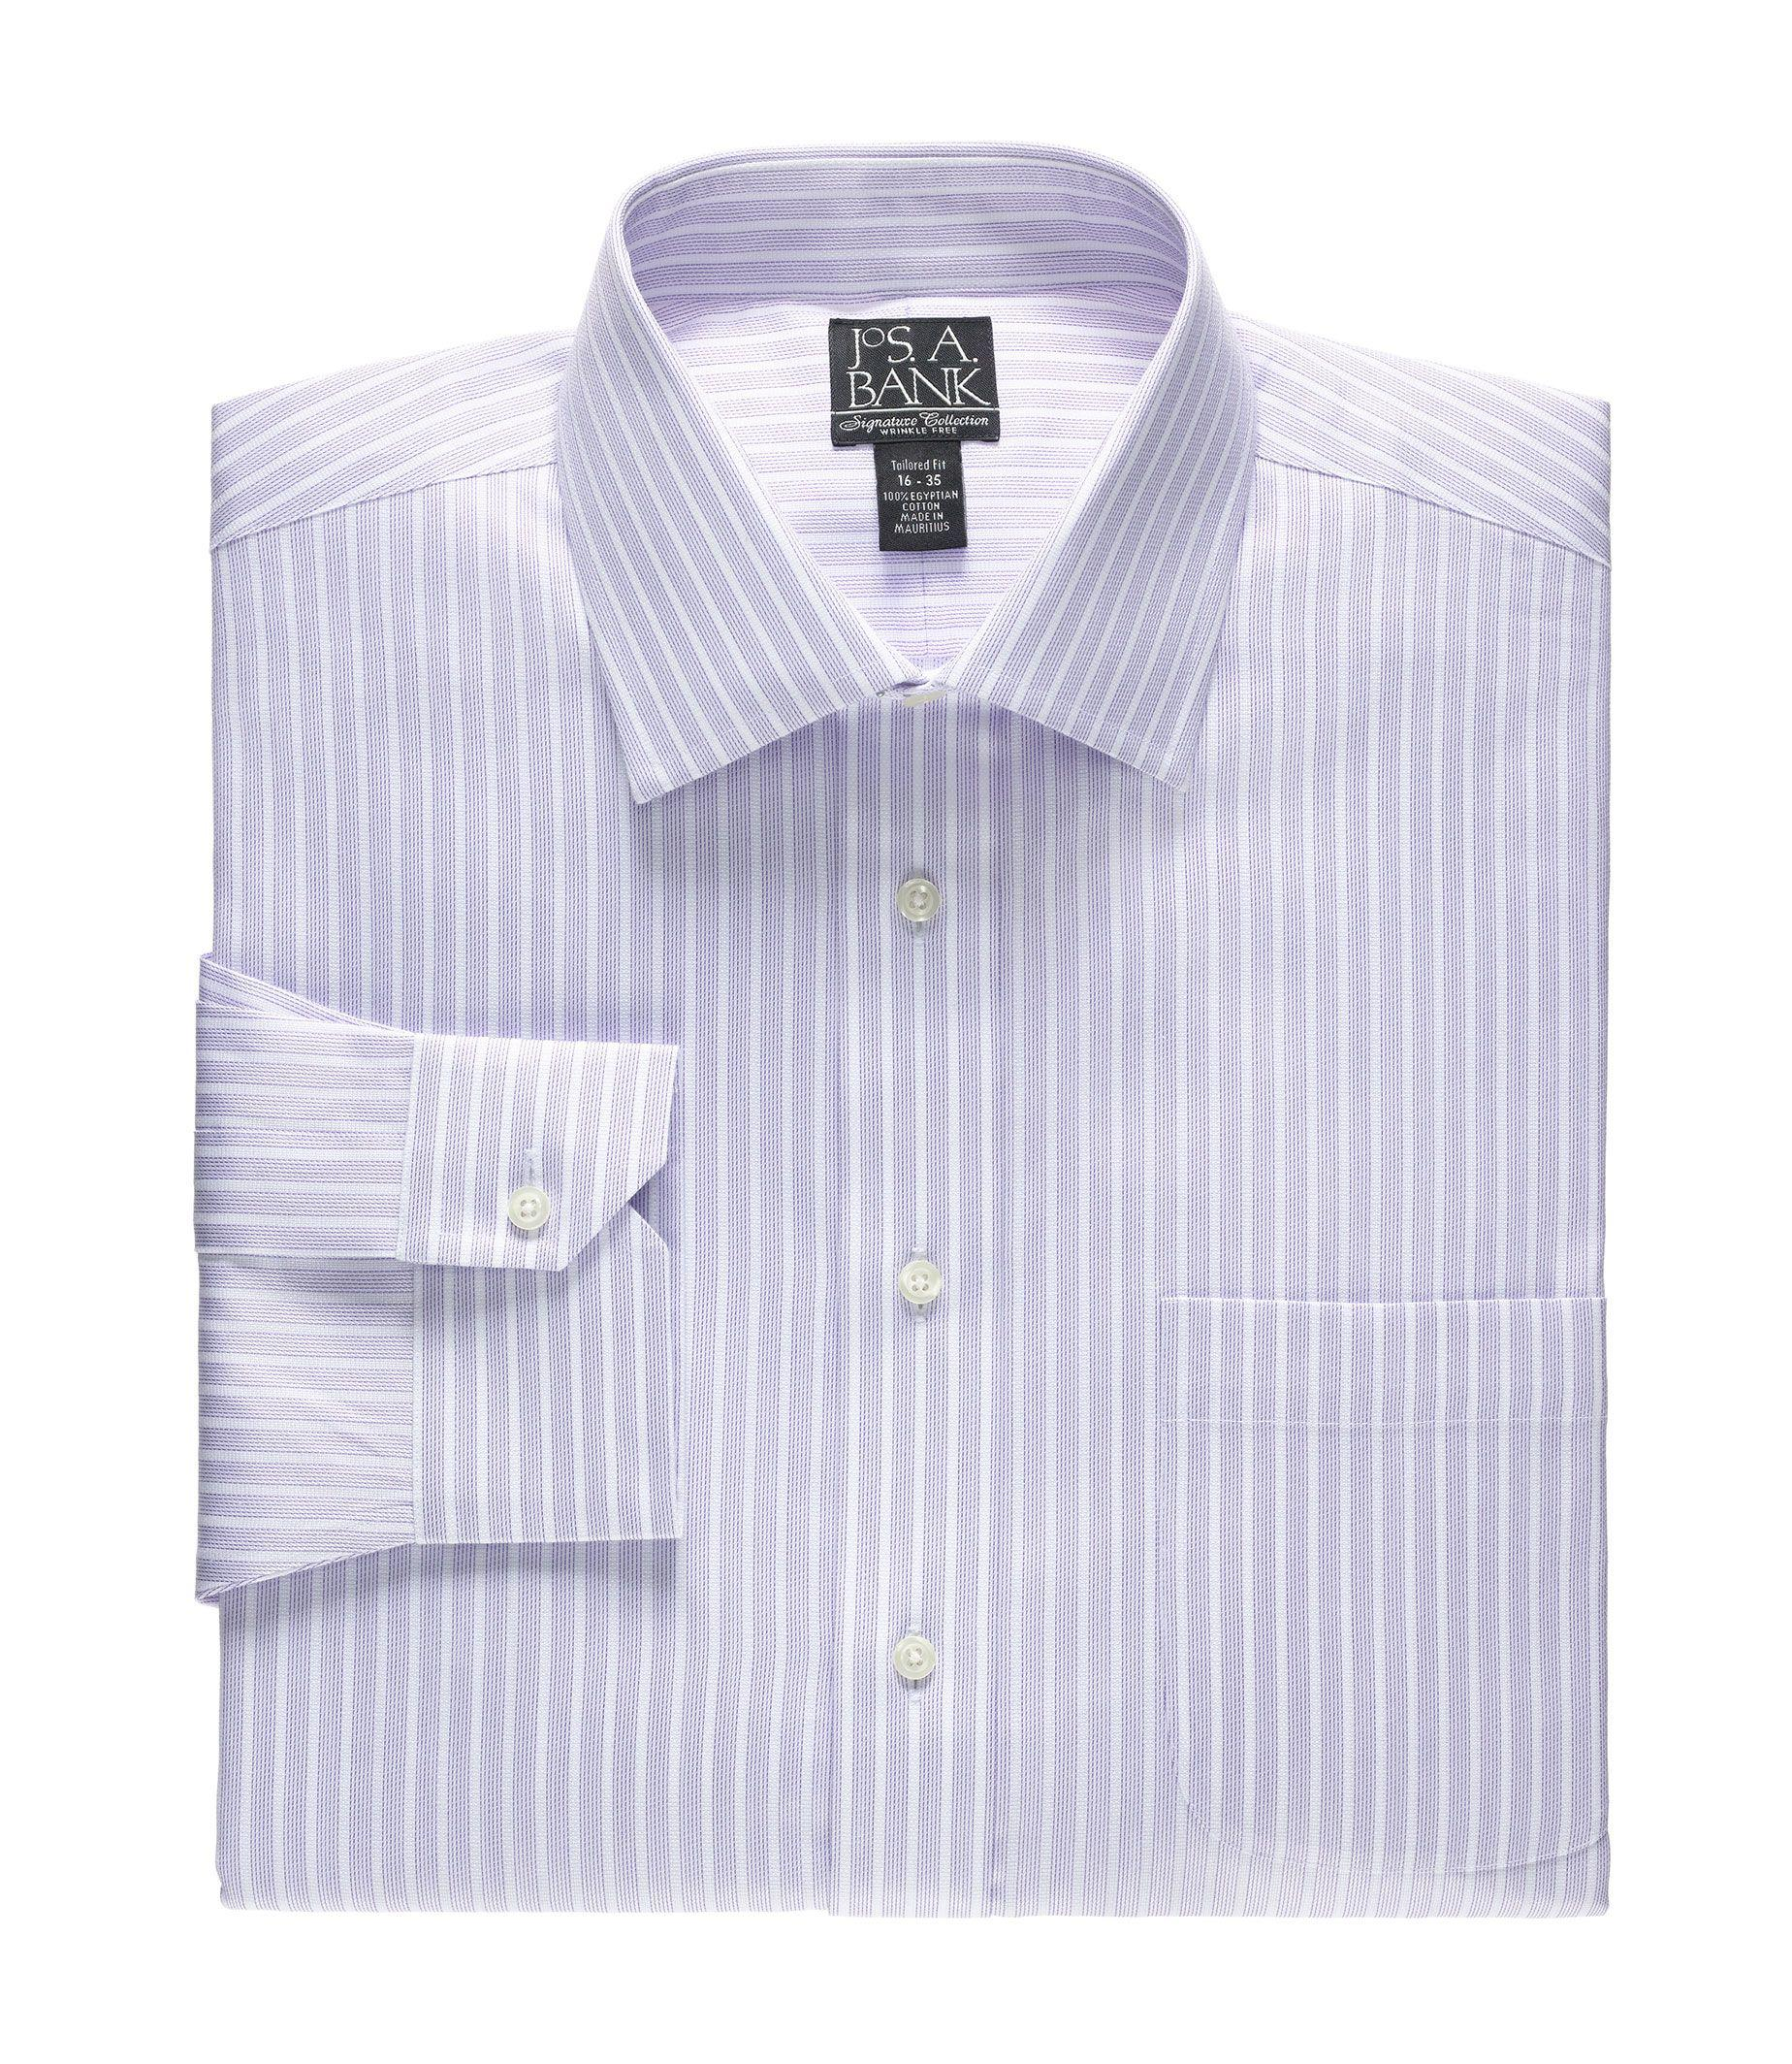 Jos a bank signature collection traditional fit stripe for Joseph banks dress shirts